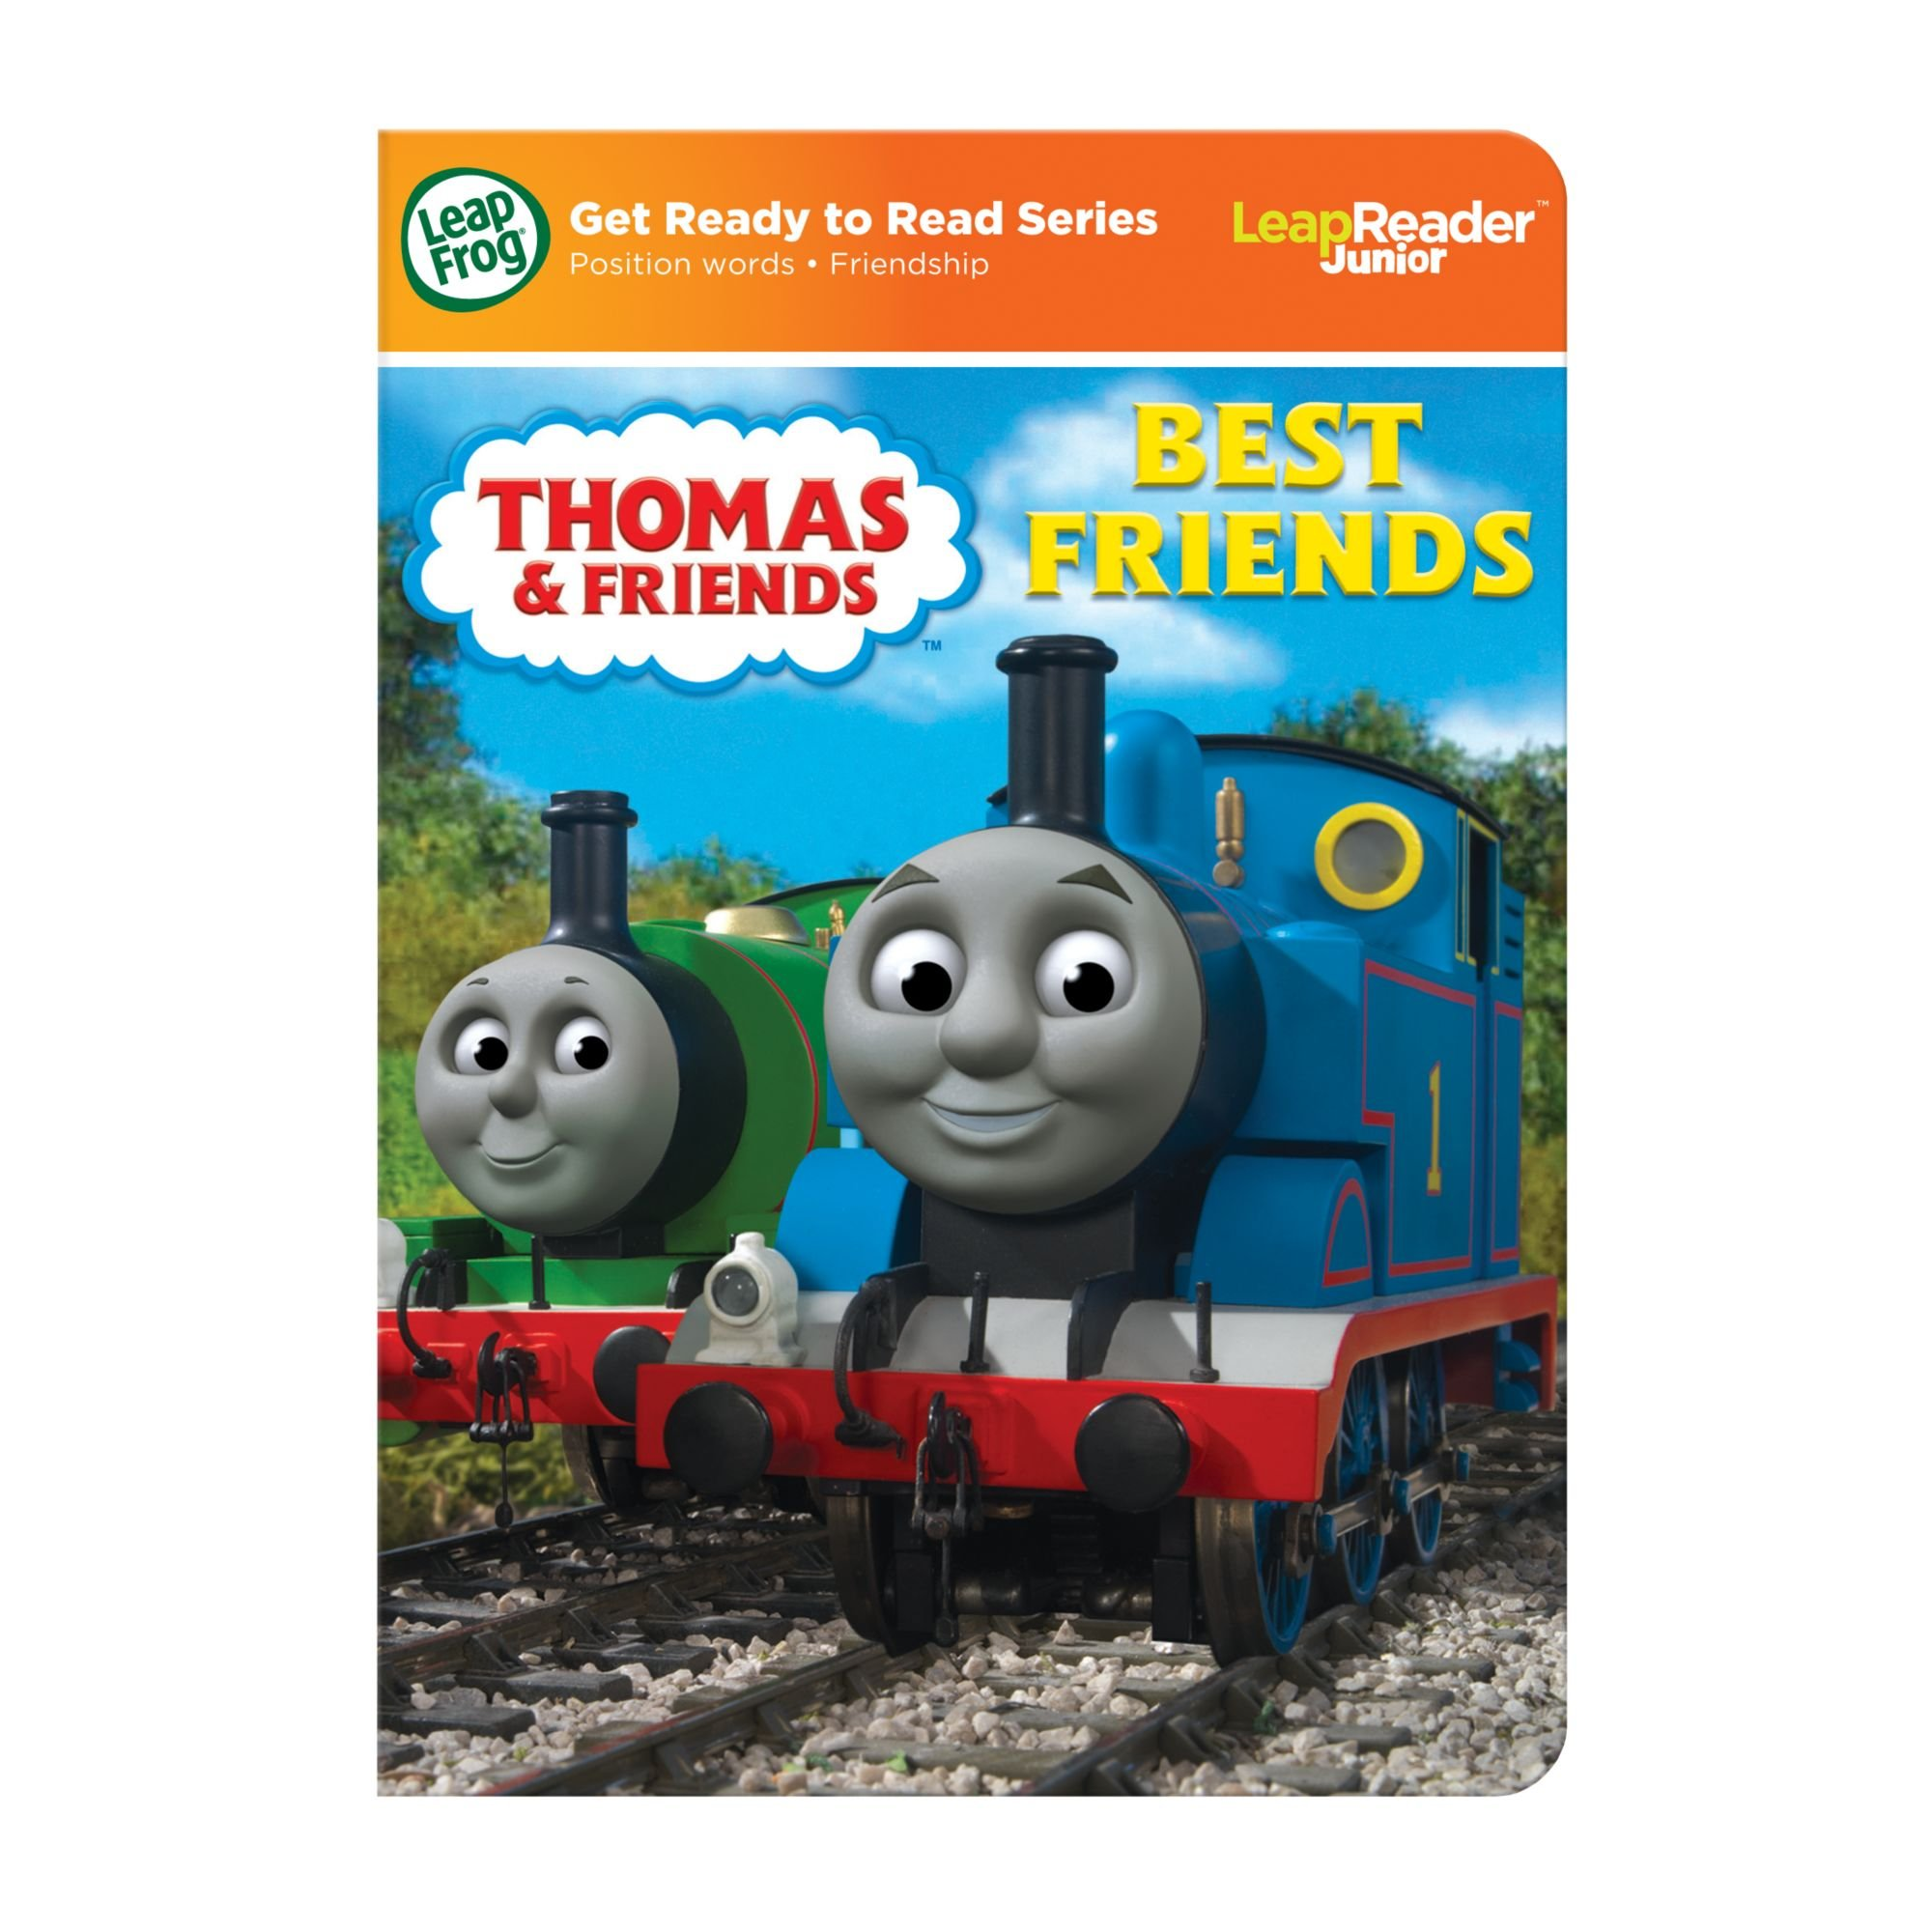 LeapFrog LeapReader Junior Book: Thomas & Friends: Best Friends (works with Tag Junior) by LeapFrog (Image #6)